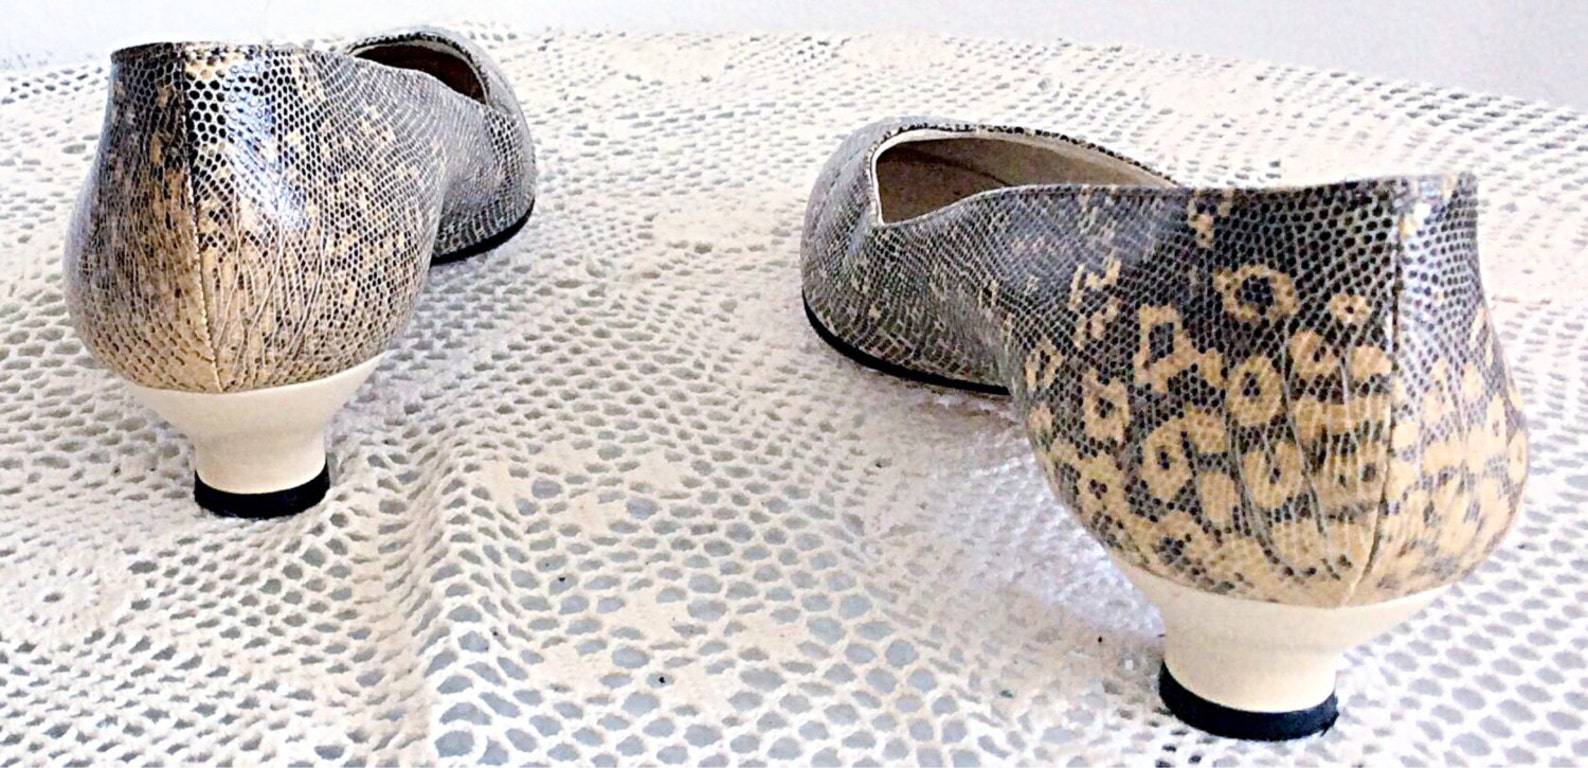 vintage yves saint laurent sz. 9 n shoes snakeskin lizard ballet flats / cream and brown animal print high heels made in italy